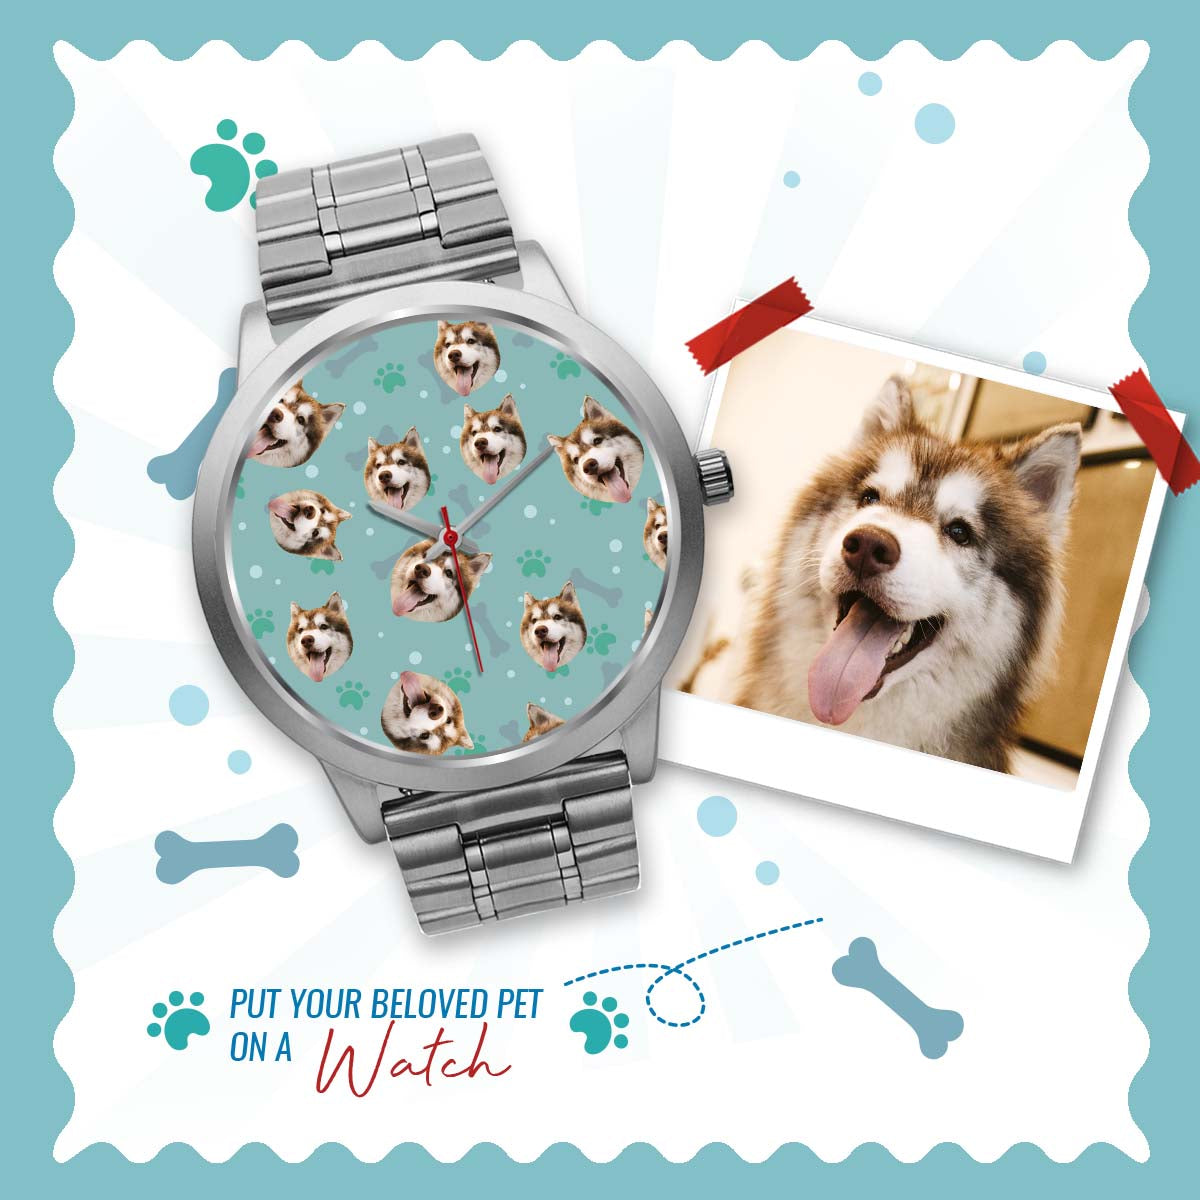 PERSONALIZED watch - upload your PET photos